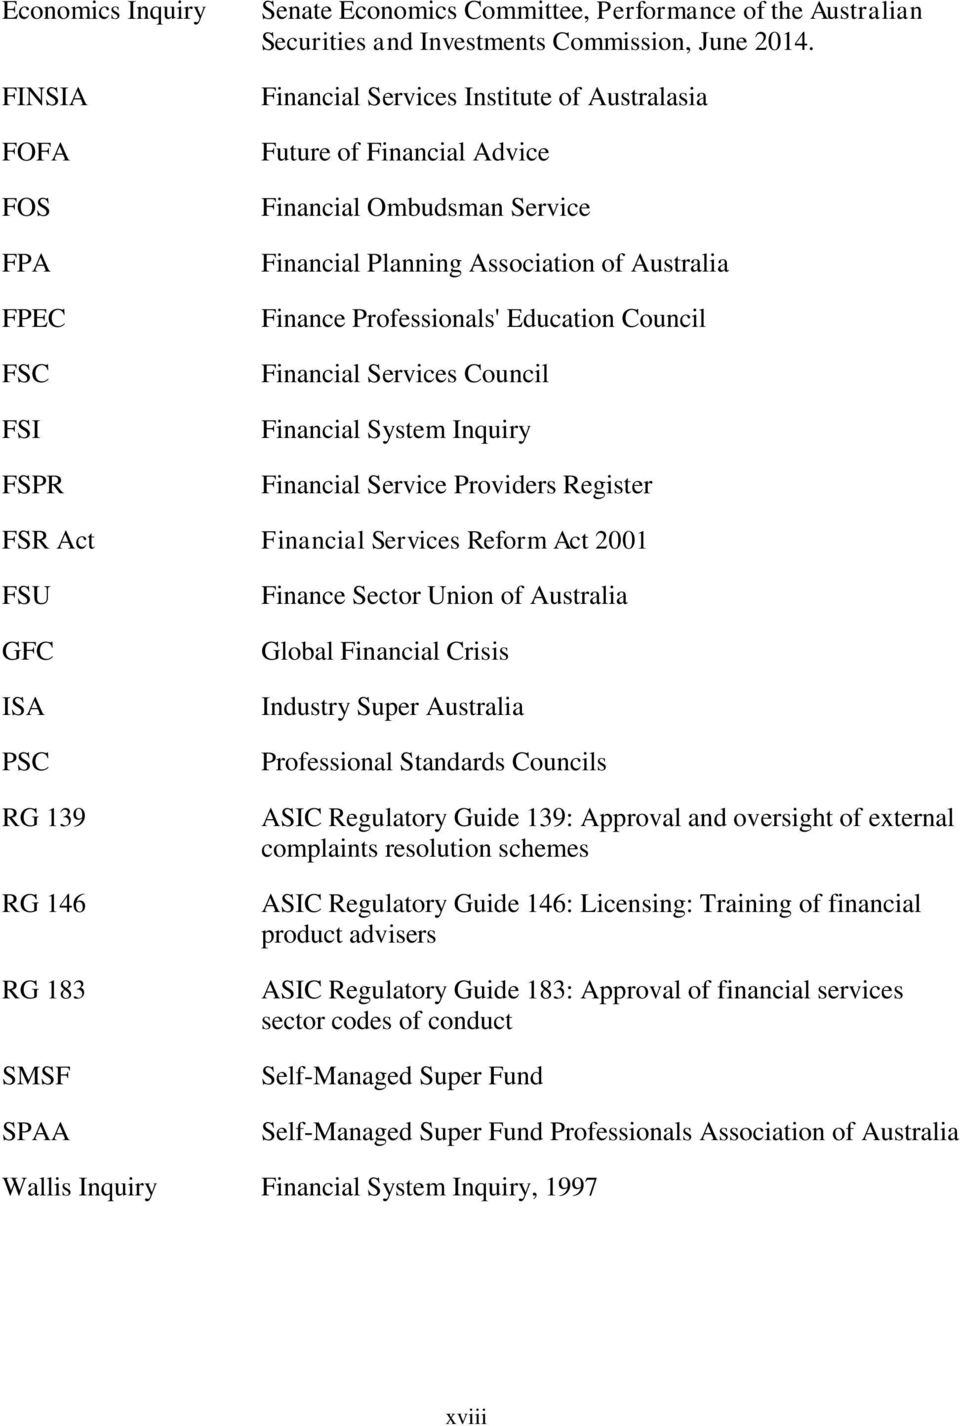 Services Council Financial System Inquiry Financial Service Providers Register FSR Act Financial Services Reform Act 2001 FSU GFC ISA PSC RG 139 RG 146 RG 183 SMSF SPAA Finance Sector Union of